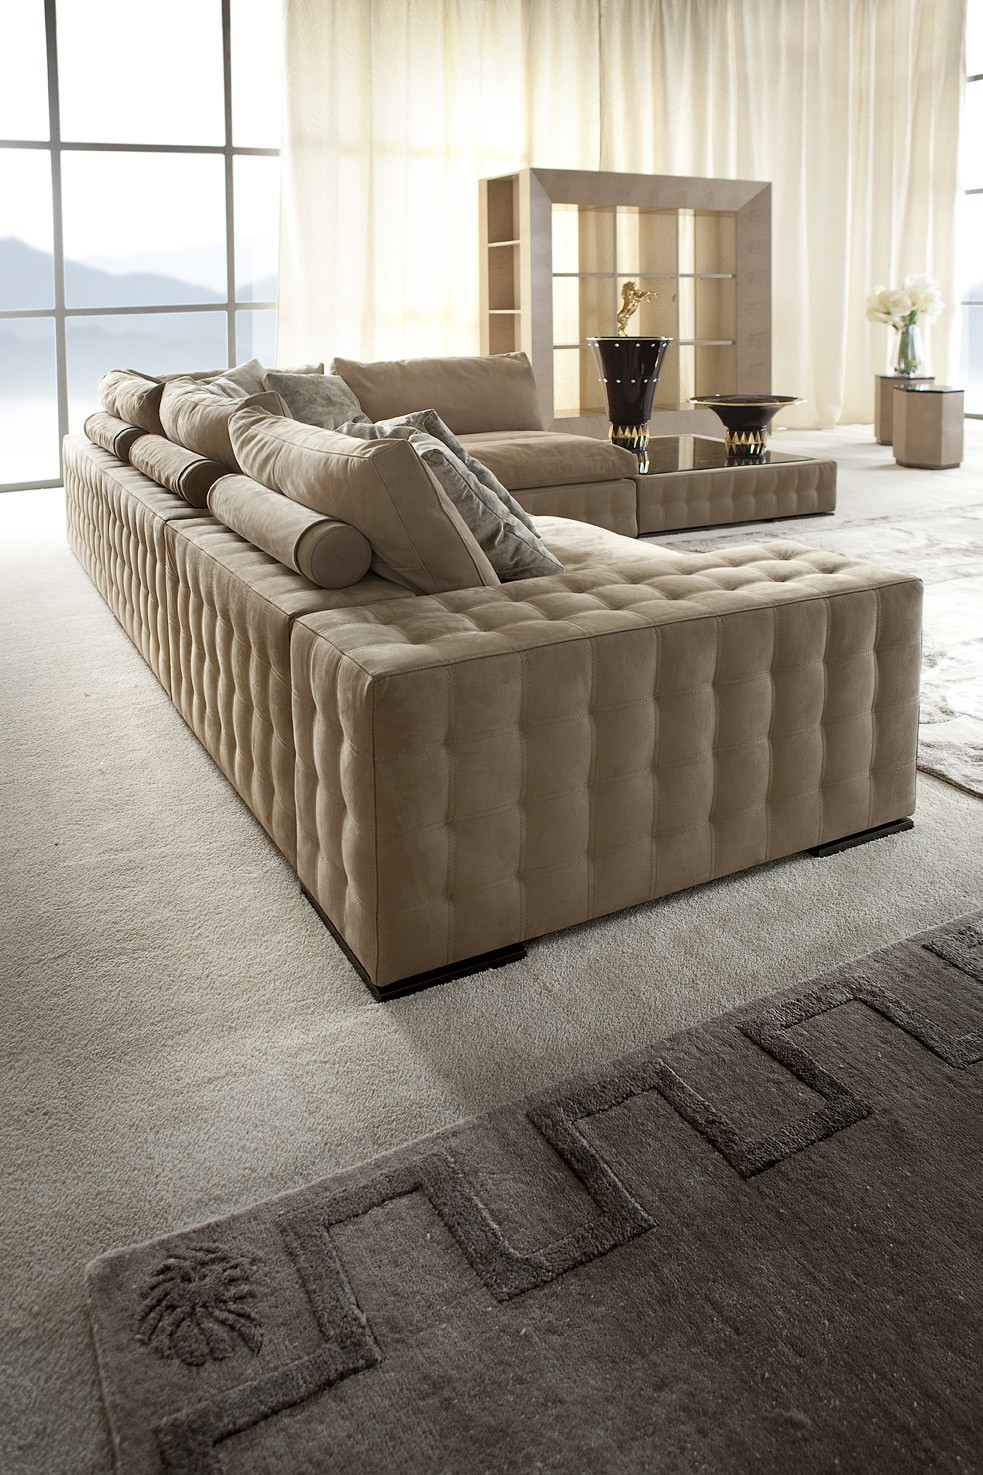 Modern Sectional Sofa Couch | Living Room Italian Furniture | Los ...